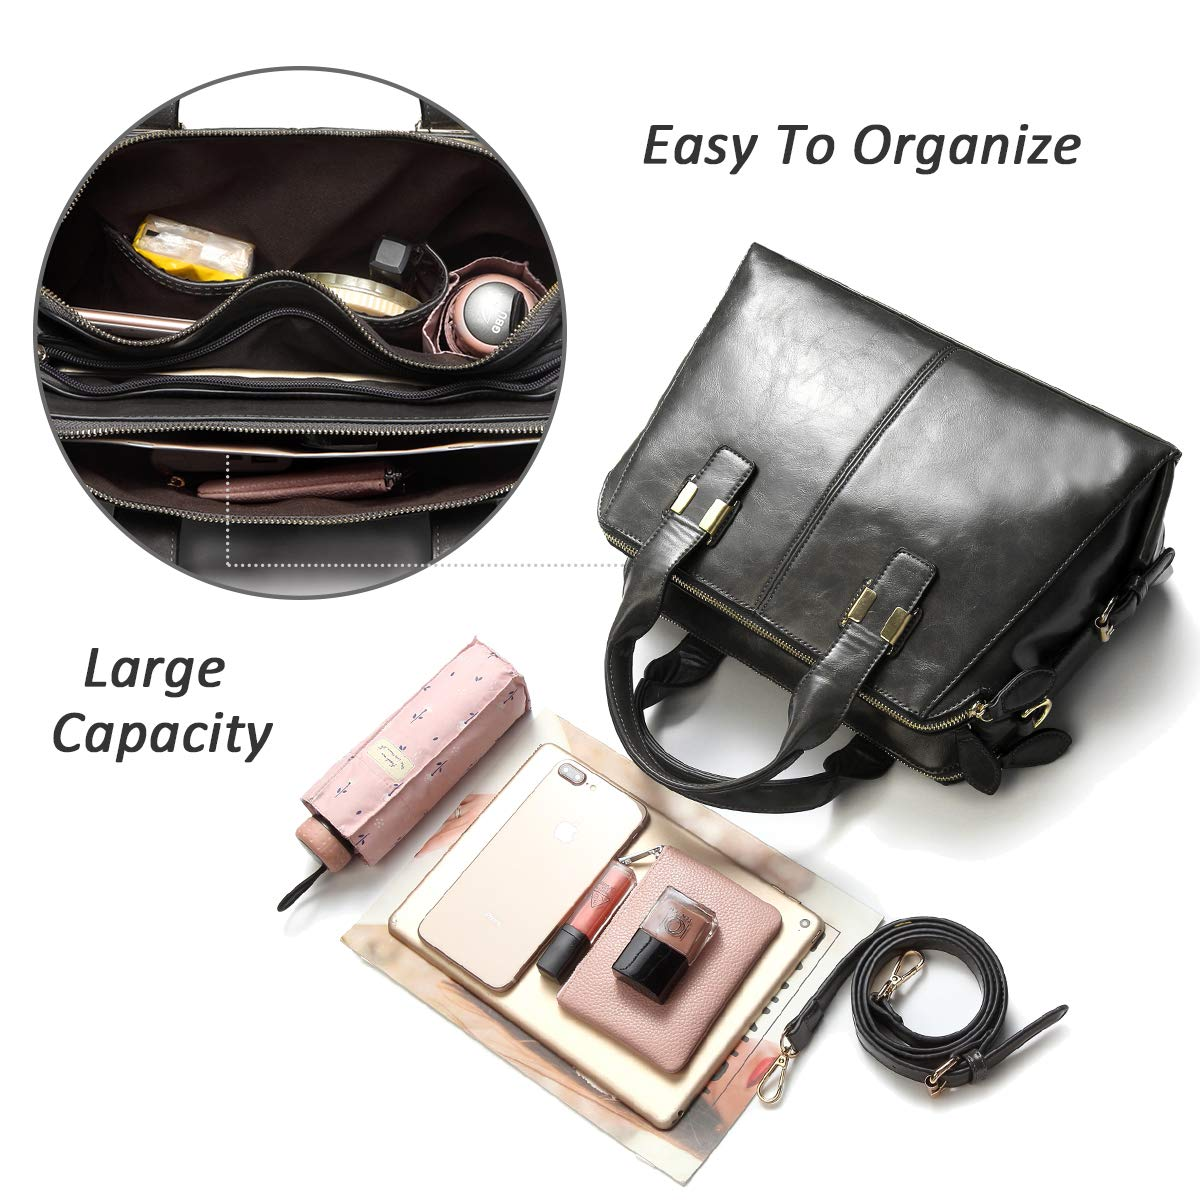 Faux Patent Leather Top Handle Handbag Work Tote Purse with Triple Compartments VASCHY Satchel Bags for Women